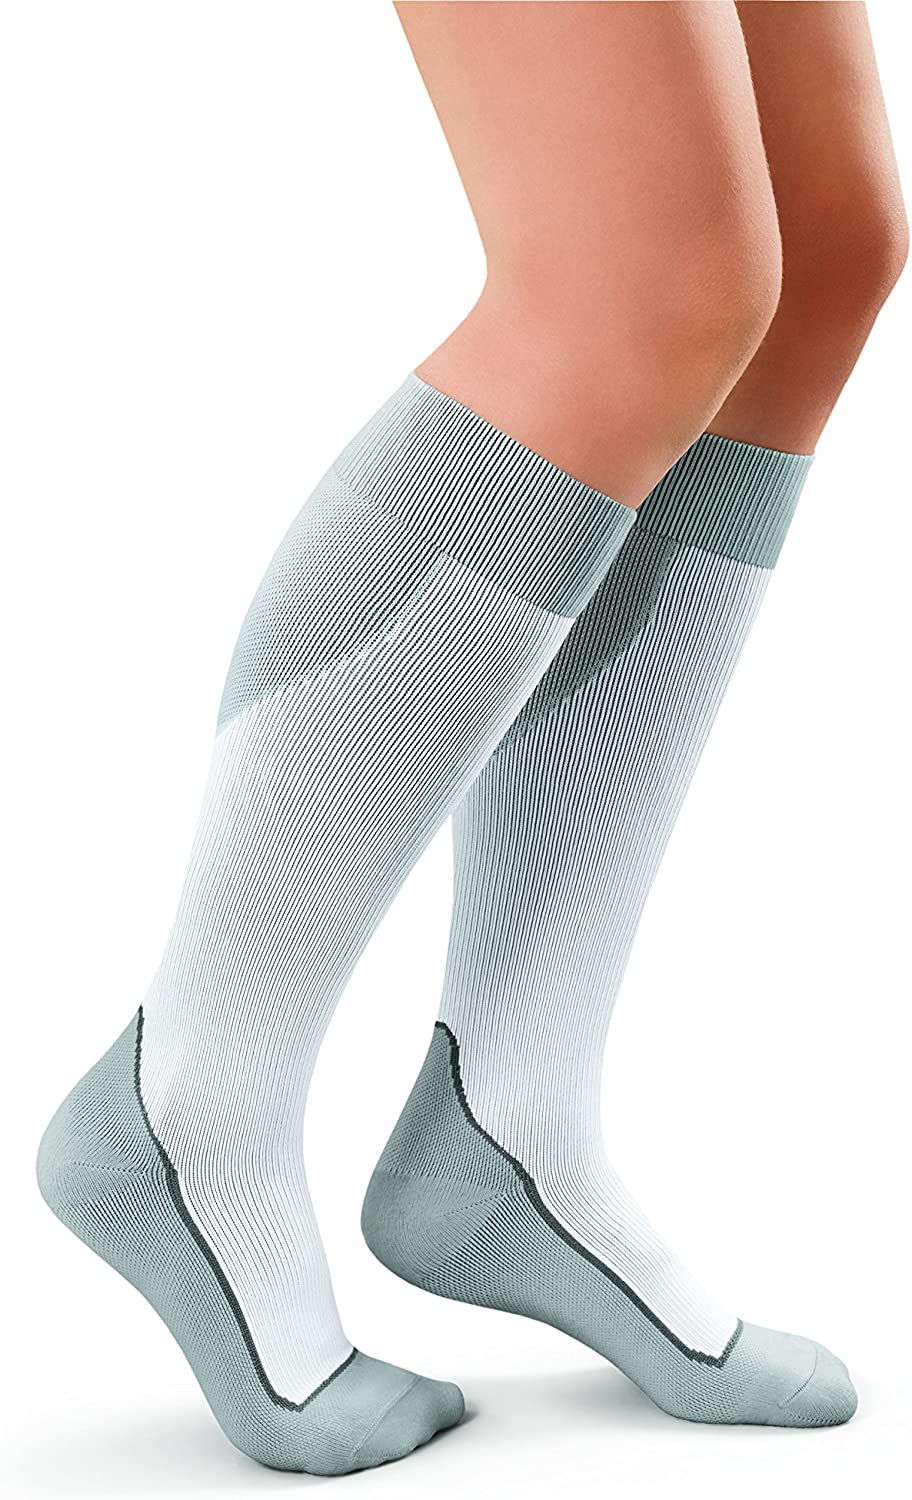 BSN Medical 7529001 JOBST Sock Knee High 20-30 To Closed Discount is also underway mmHg Special price for a limited time